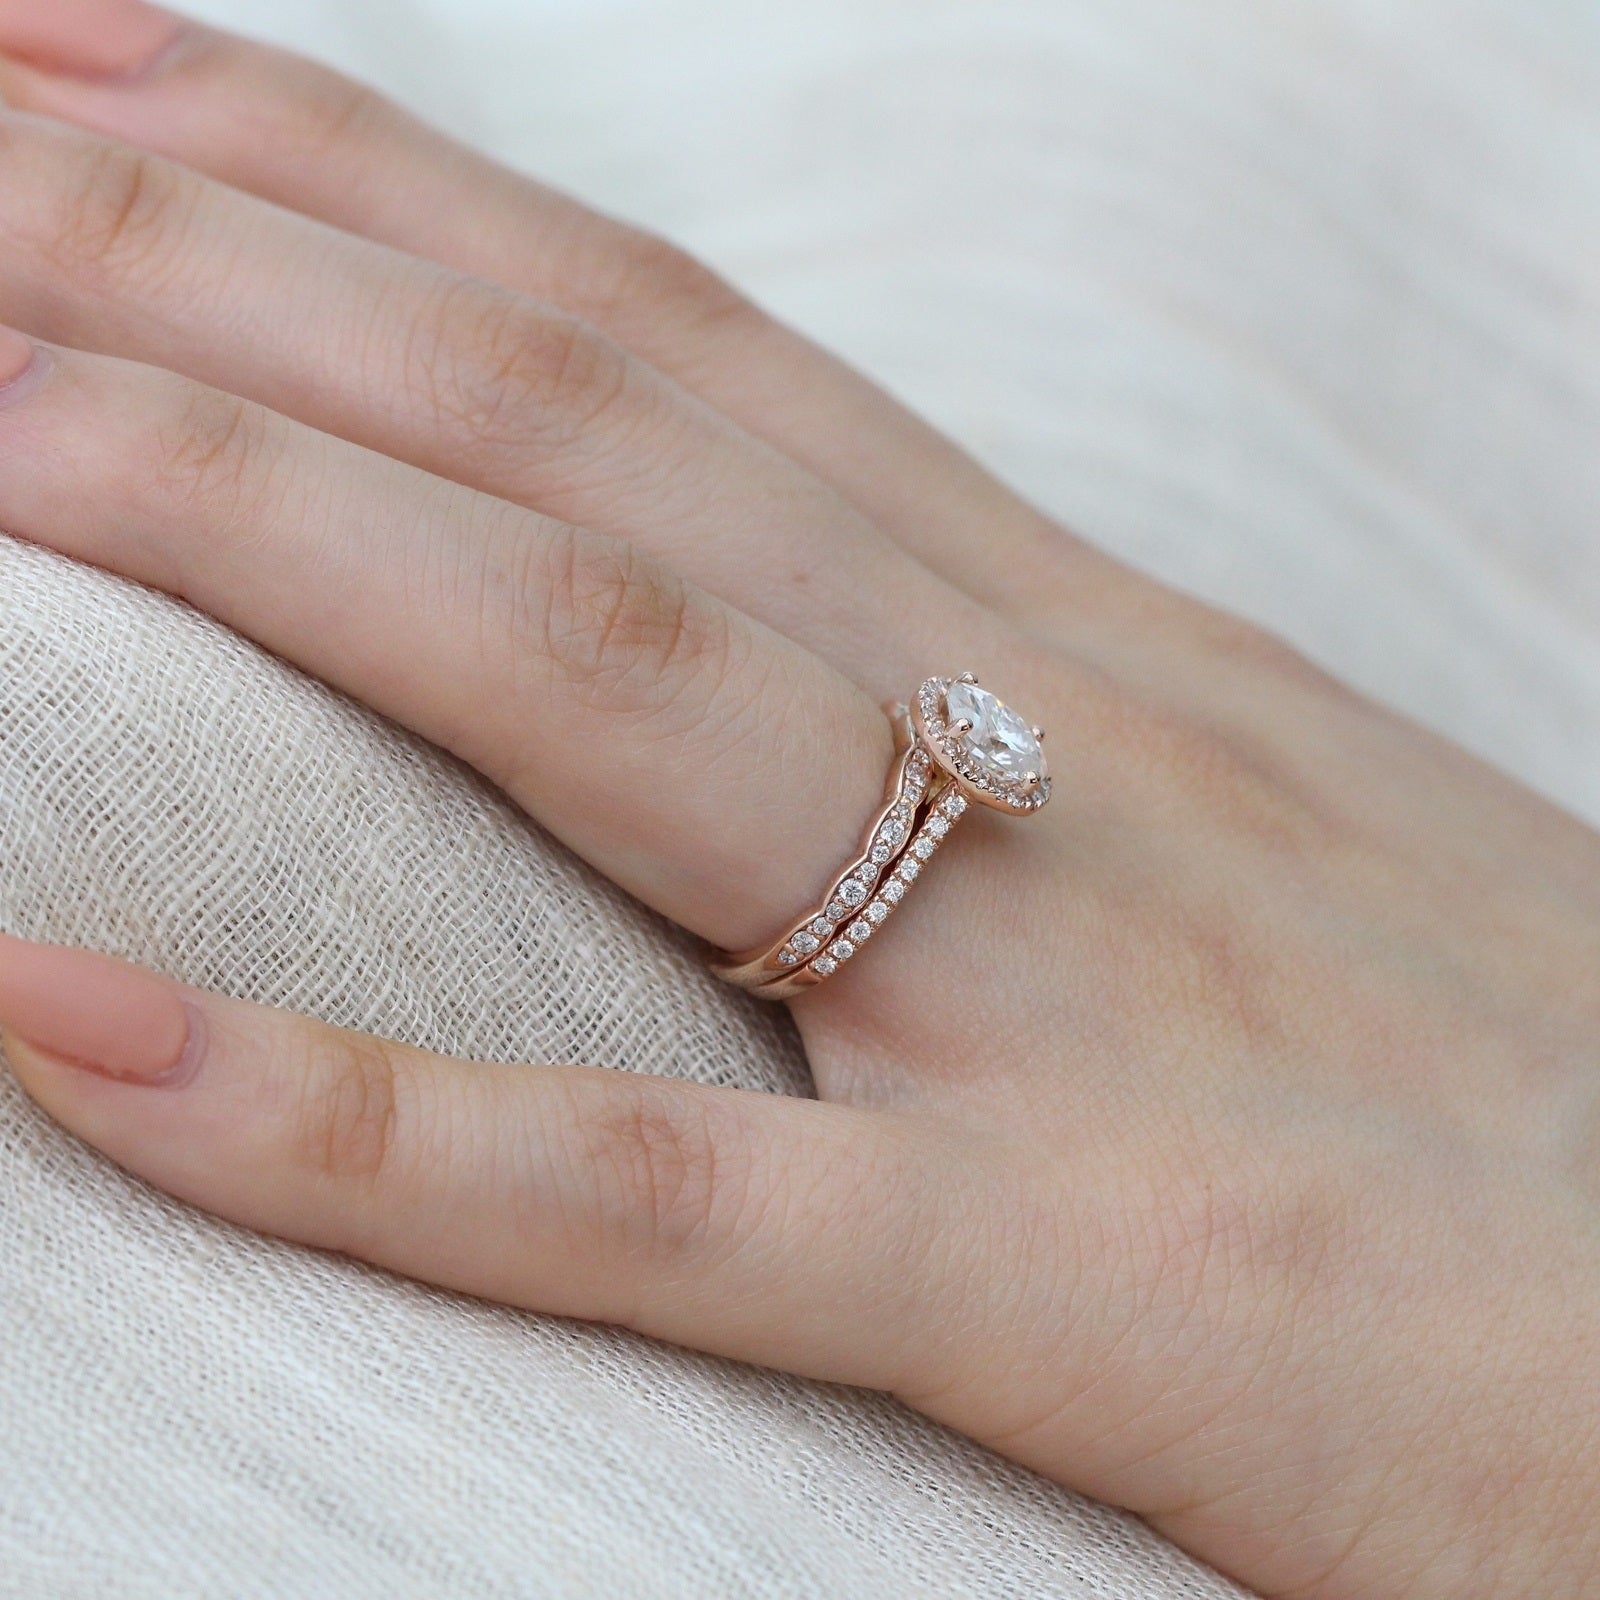 Scalloped Diamond Wedding Band In White Gold By La More Design Share On Facebook Tweet Twitter Pin It Pinterest: Rose Gold Scalloped Diamond Wedding Band At Websimilar.org